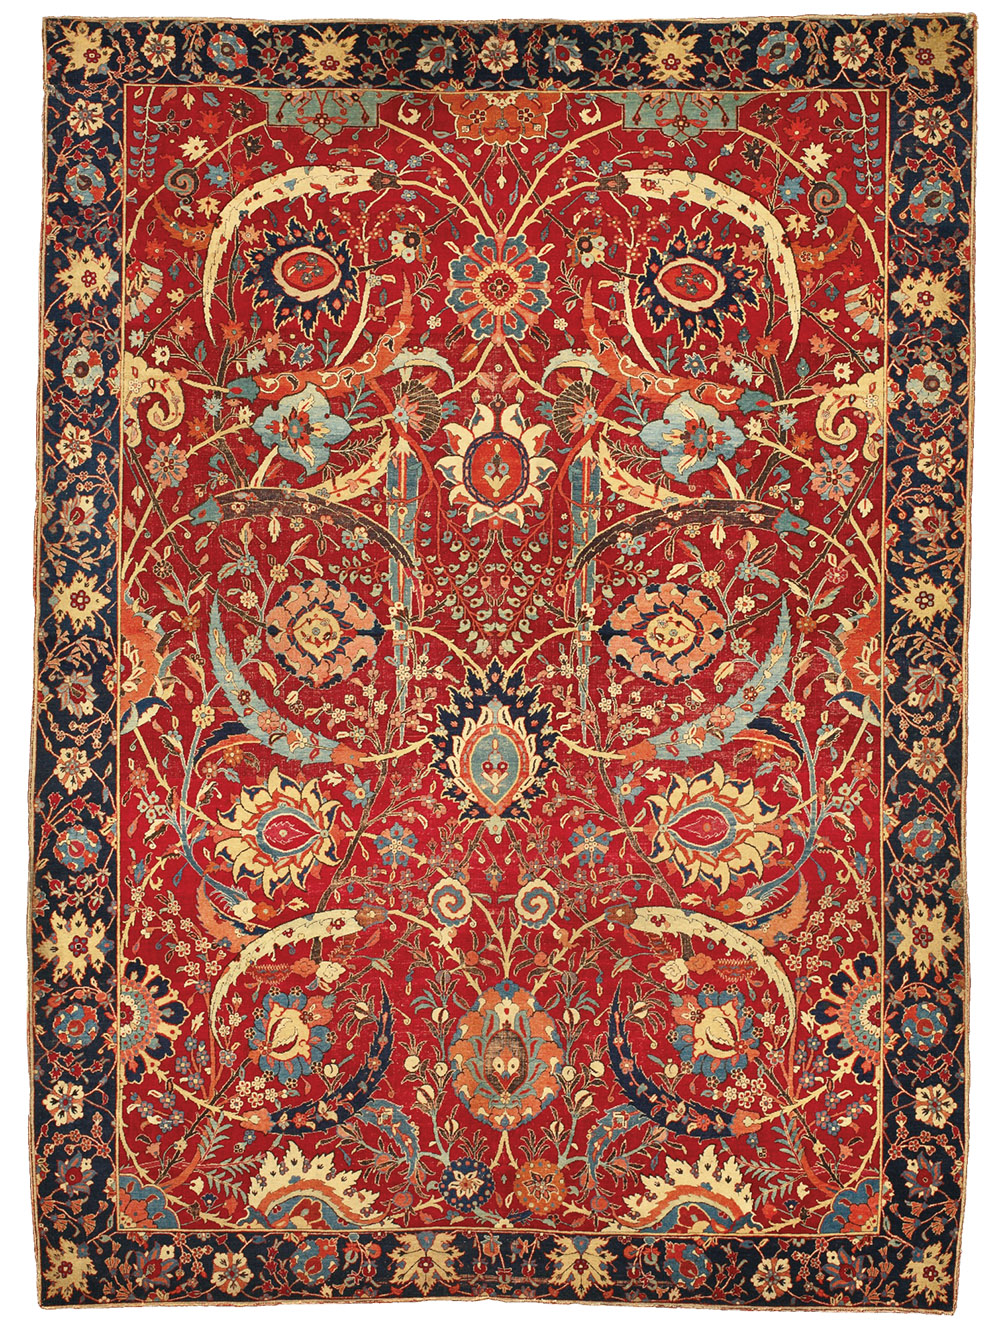 Most expensive carpet - The Sickle-Leaf Carpet